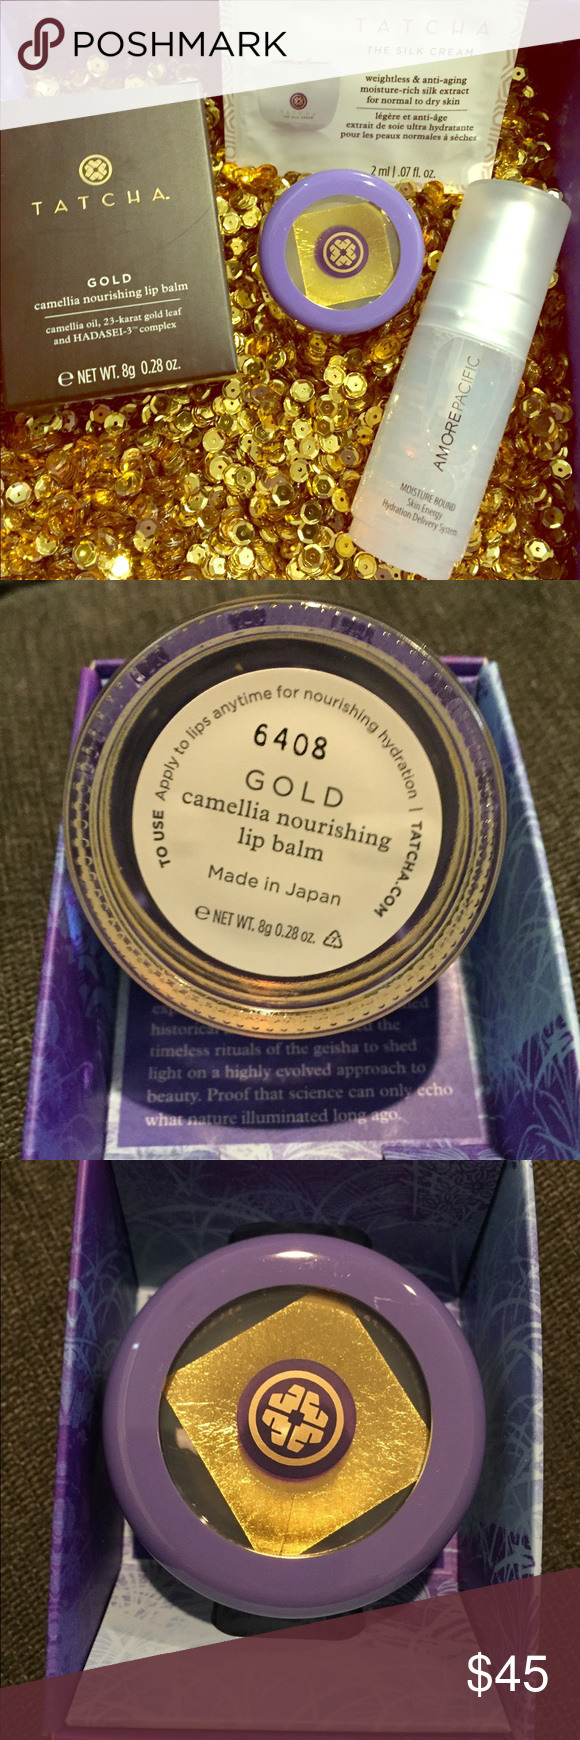 Tatcha Gold Camellia Lip Balm + Amorepacific mist New/unswatched FULL SIZE Tatcha Gold Camellia Nourishing Lip balm. This luxurious lip balm is encased in a glass jar & adorned with a thin sheet of 24-karat gold that leaves your lips soft! Comes with TATCHA Silk Cream sample packet (a full size of this cream is $120+!)  & also comes with a 30mL skin loving Amore Pacific Moisture Bound Hydration Spray. This travel spray gives skin an extra boost of hydration when needed ⭐️ Lip balm comes with box - Mist is brand new & unsprayed with no box ⭐️ Sephora Makeup